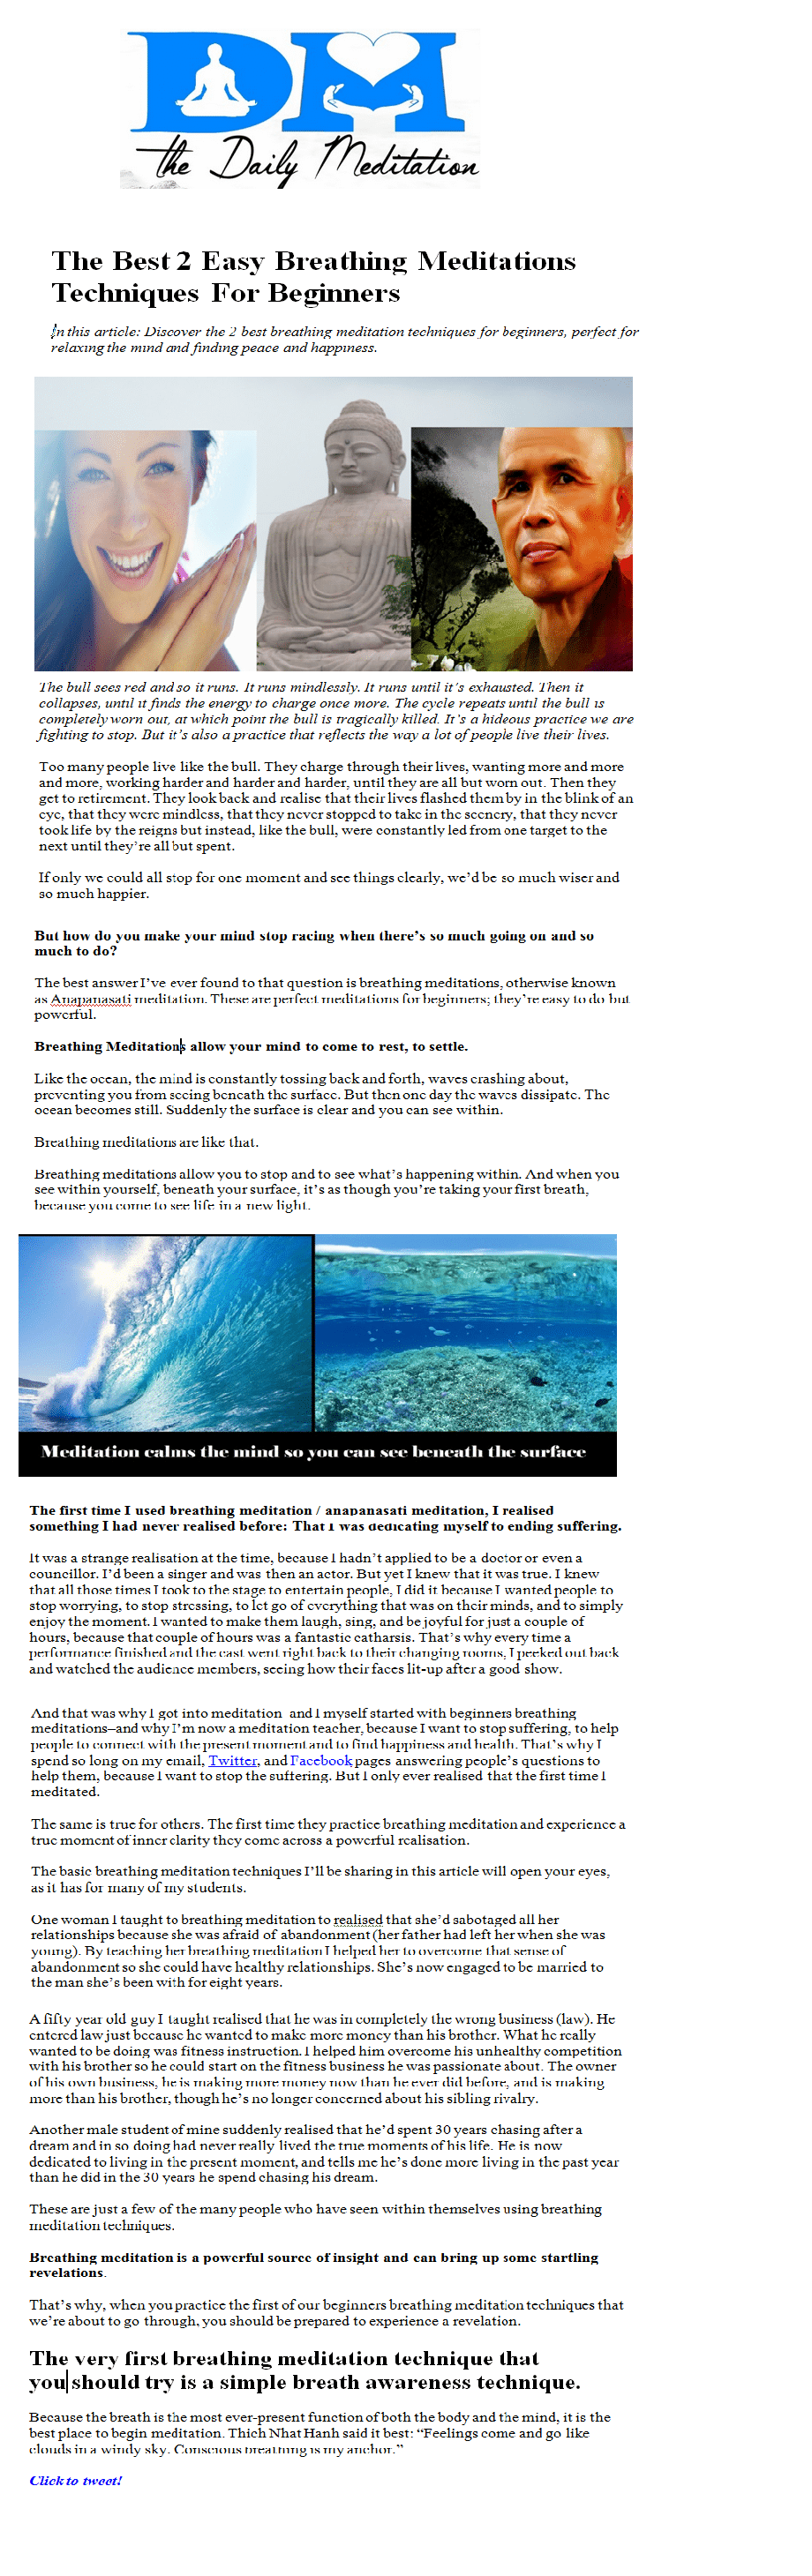 tdm newsletter header2